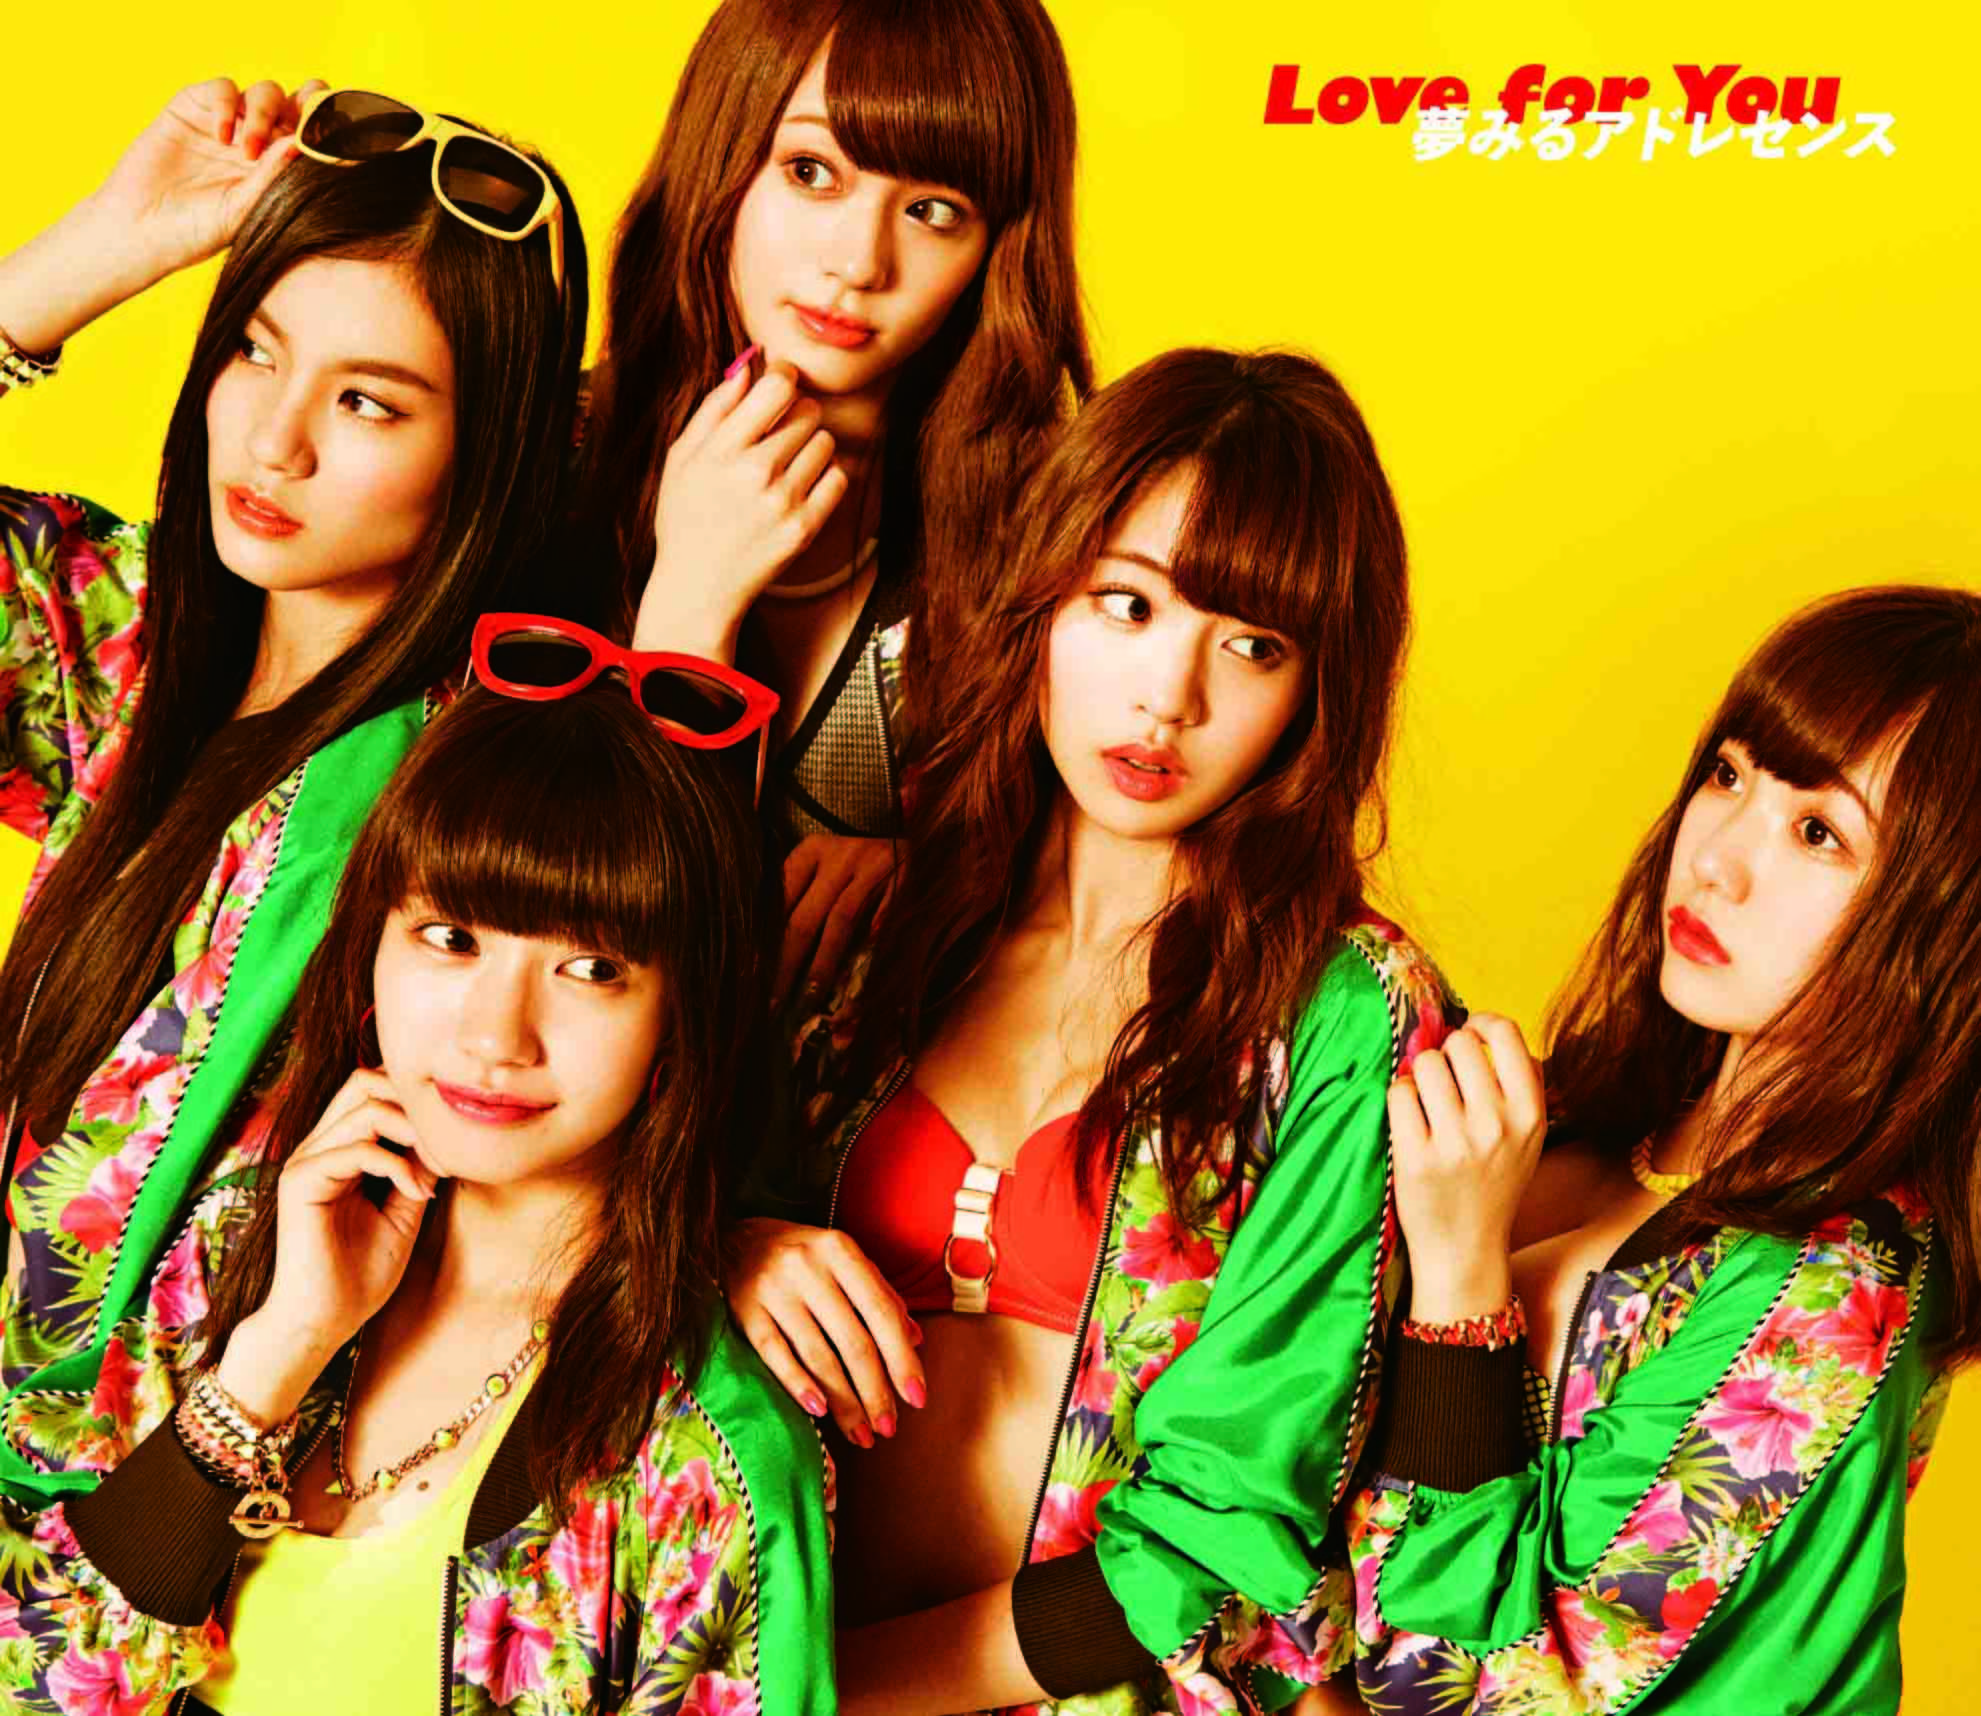 「Love for You」